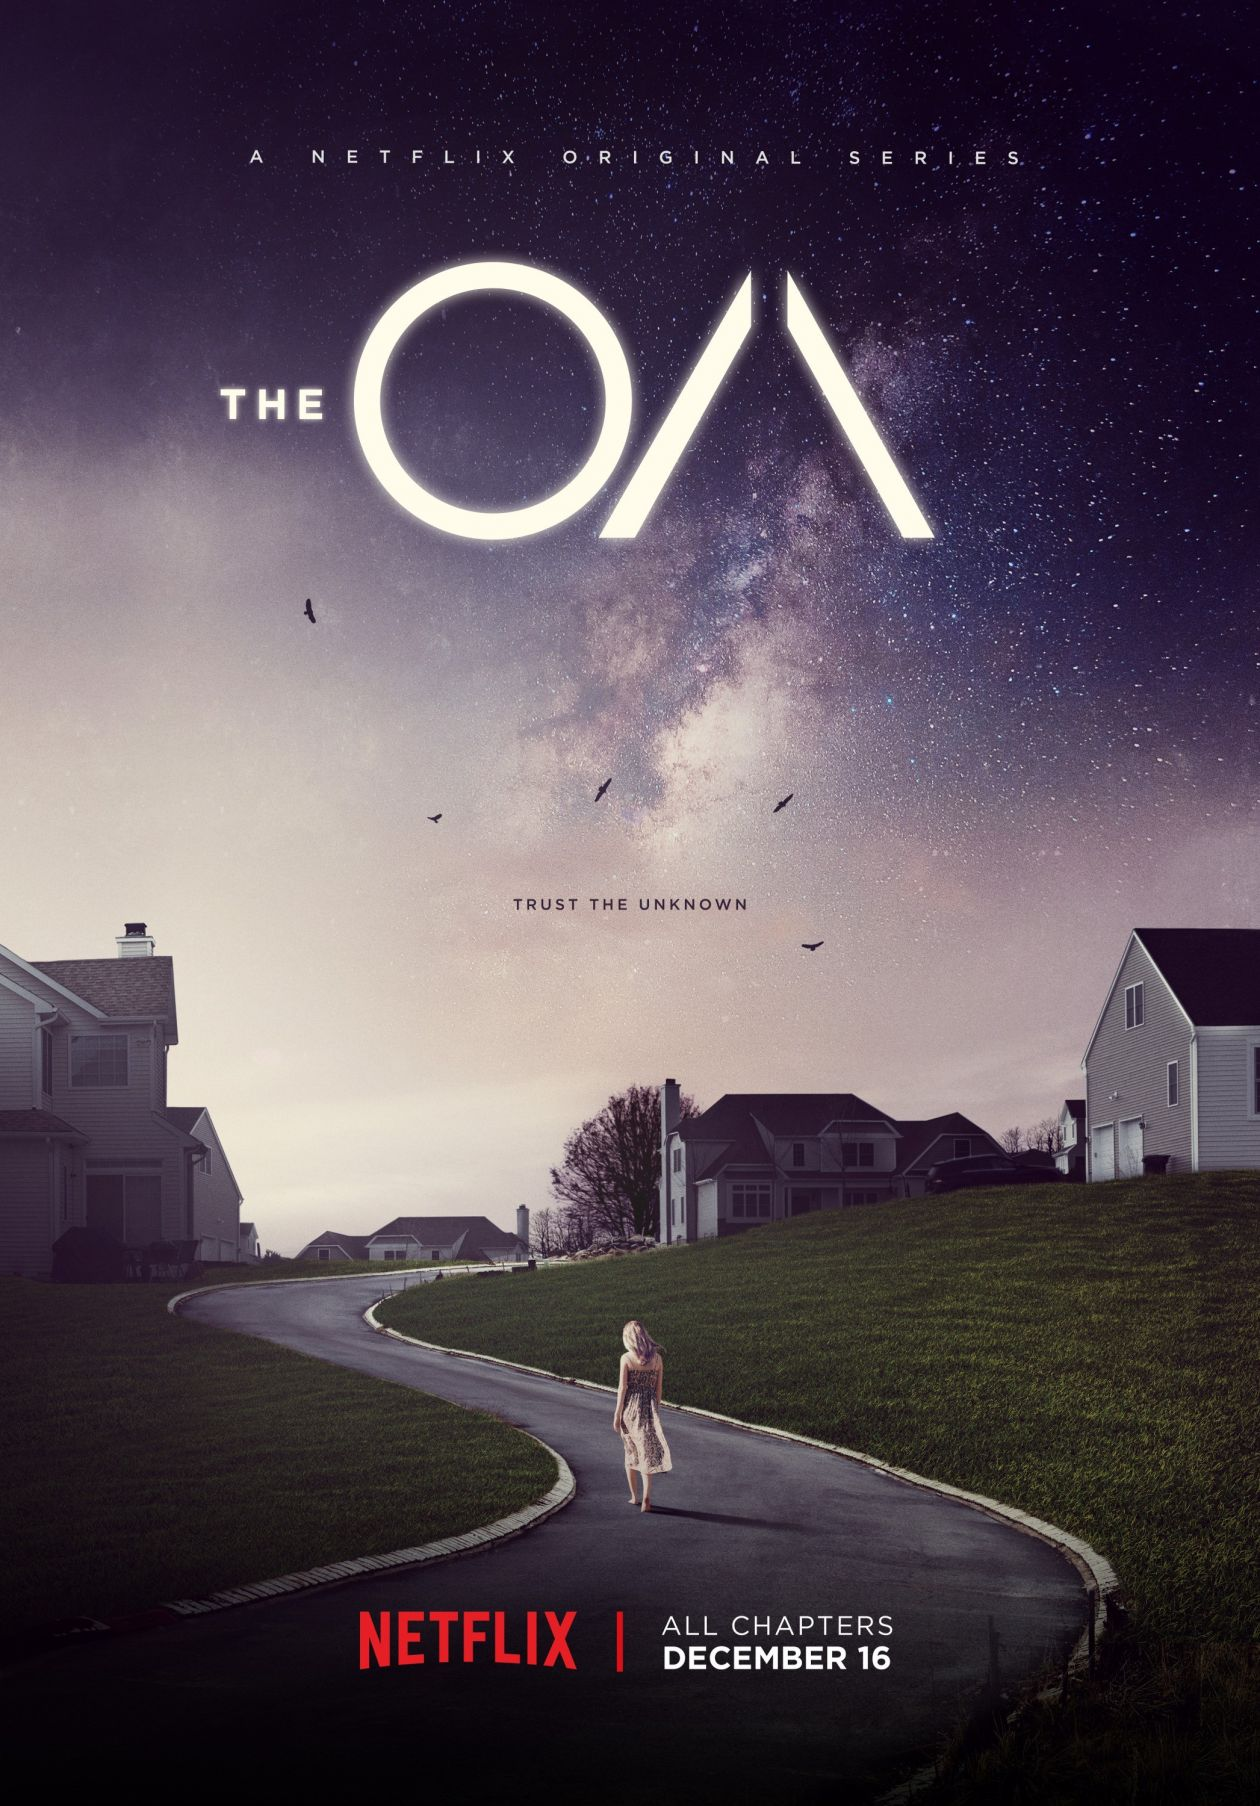 Brit Marling actress | The OA / Brit Marling, Zal Batmanglij / netflix 2016 SERIE POSTER